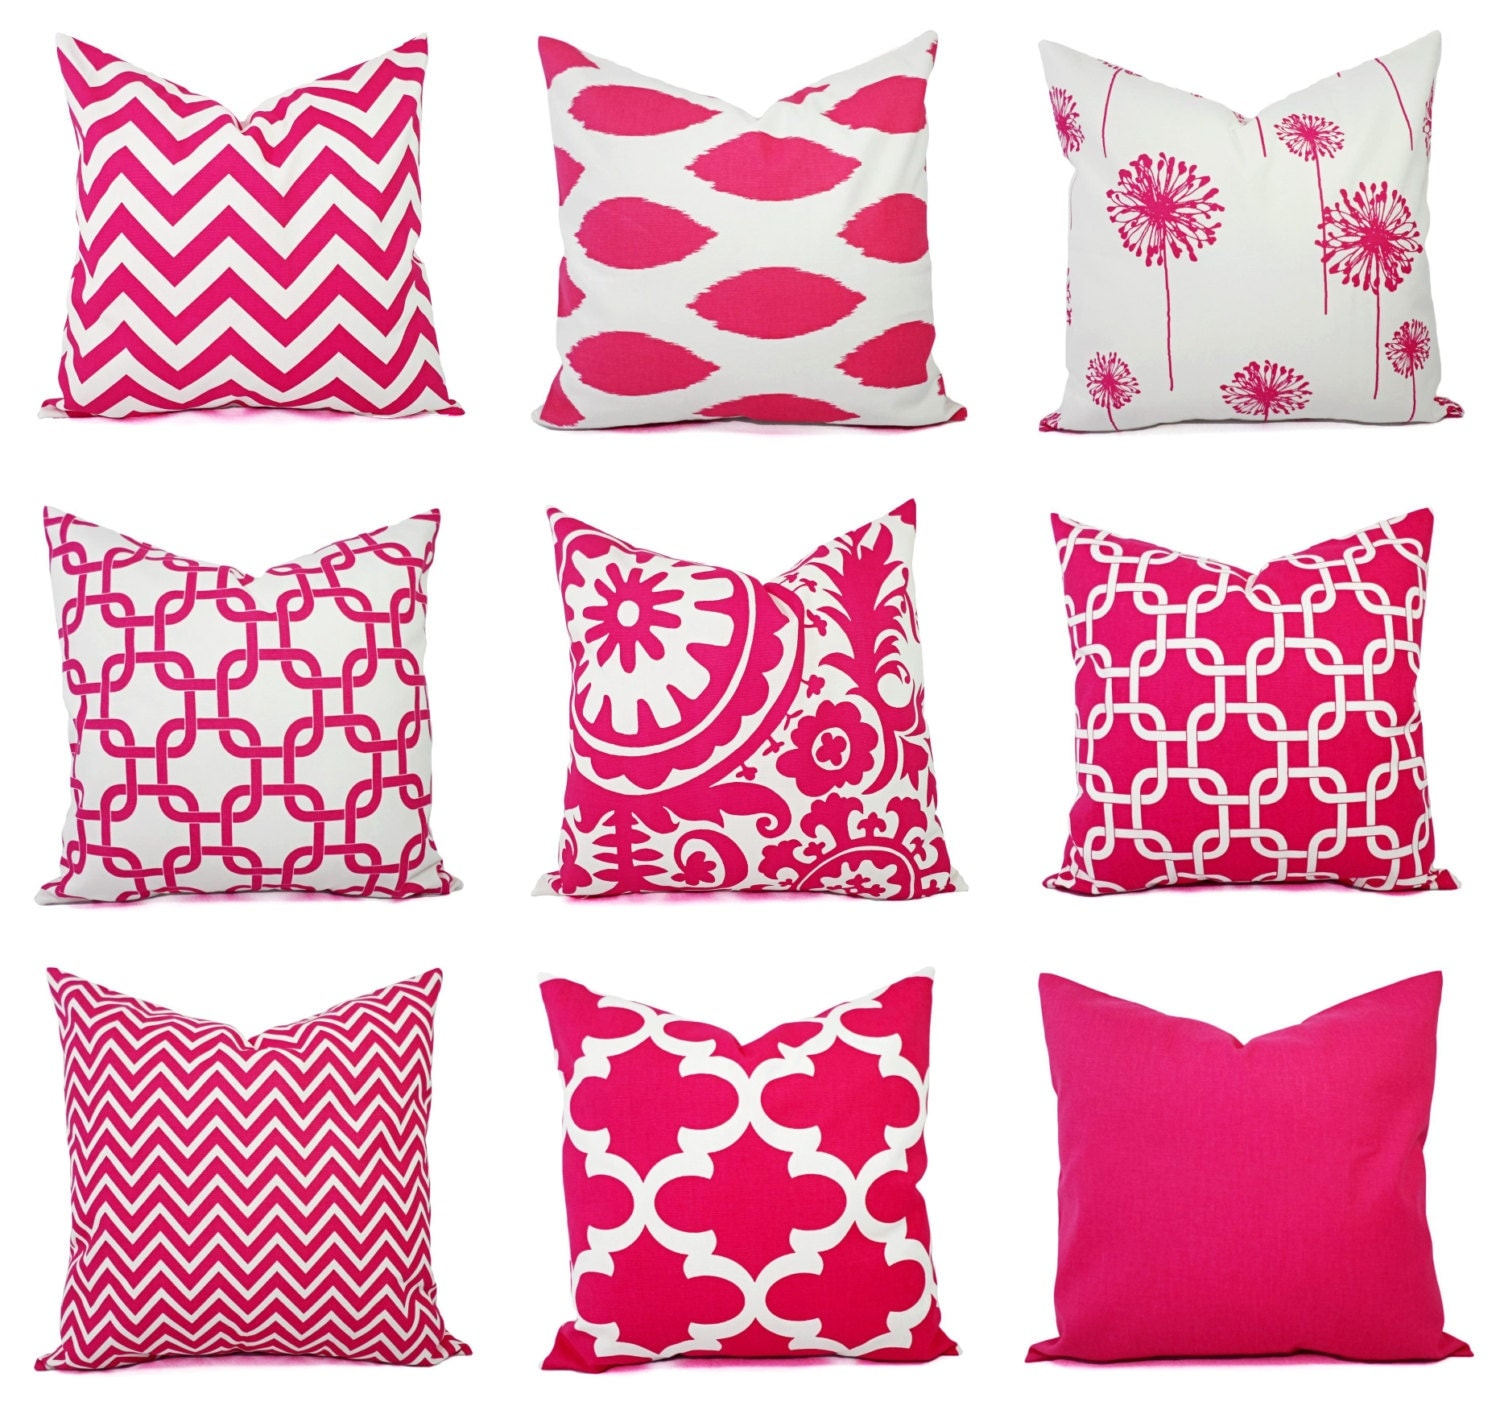 Pink Decorative Pillow Covers : One Decorative Pillow Cover Bright Pink and White Pillow